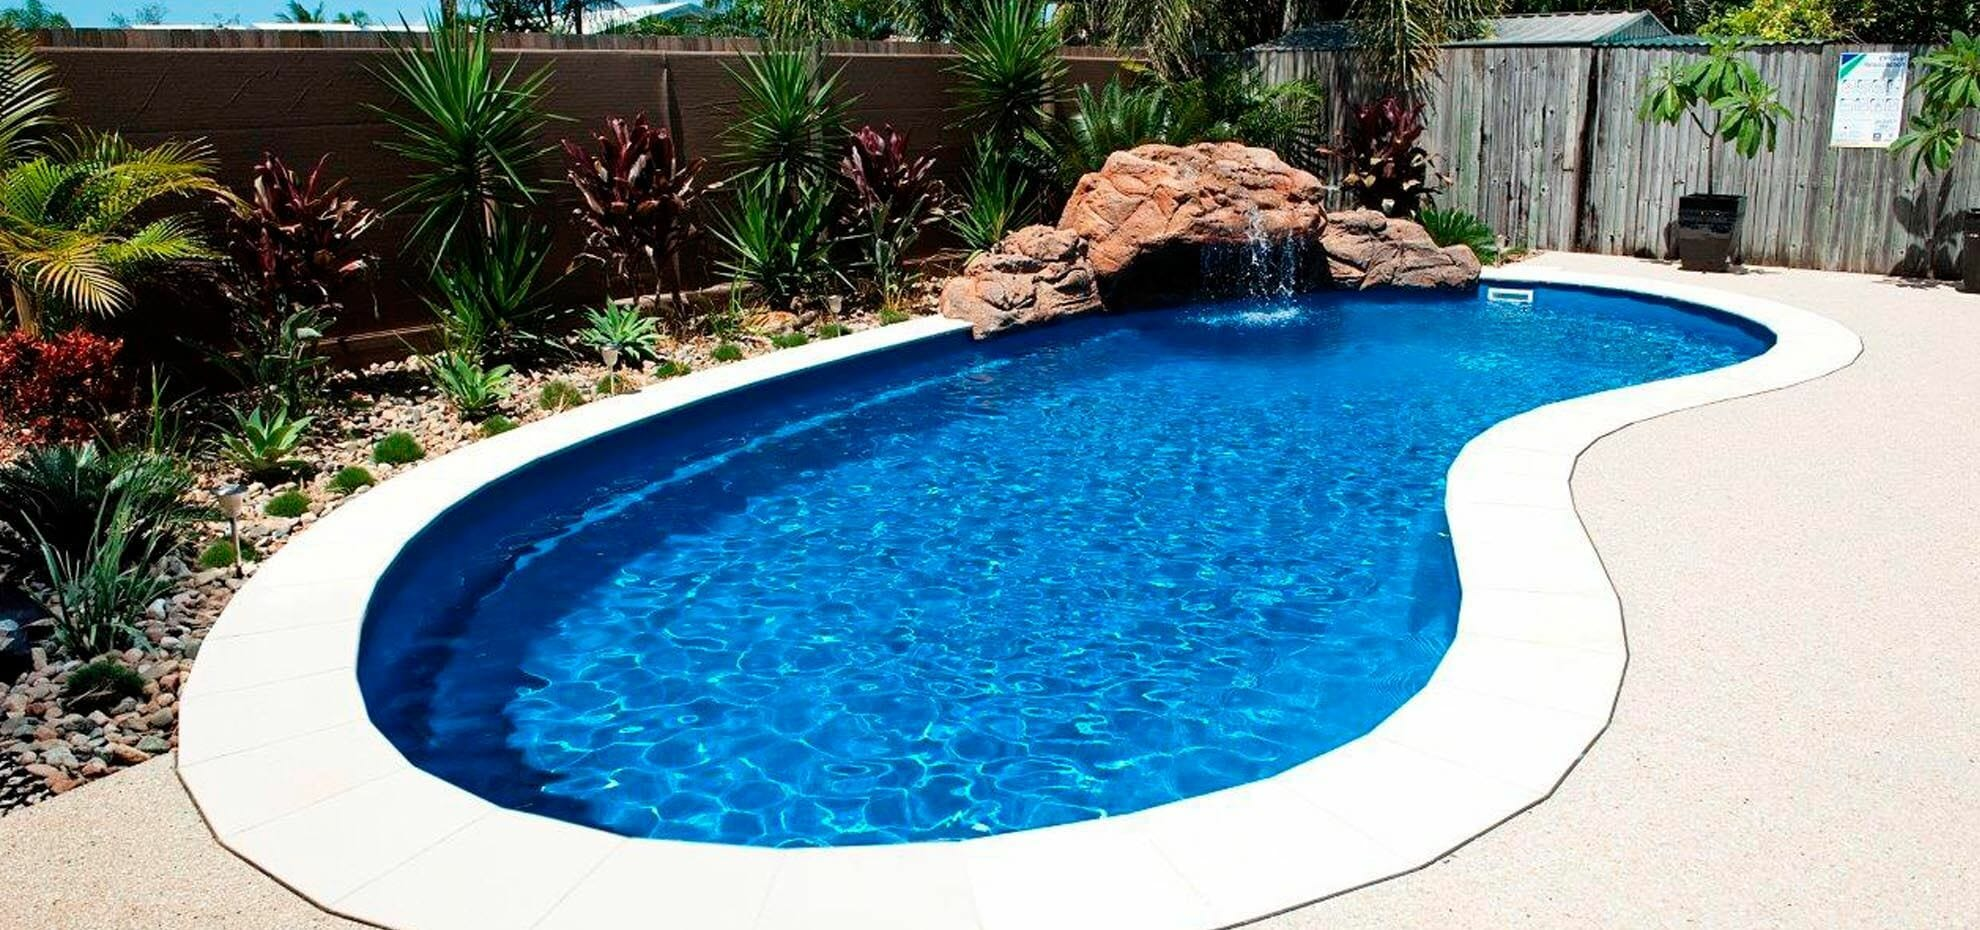 Tuscany Fiberglass Pool with cedar deck by Leisure Pools